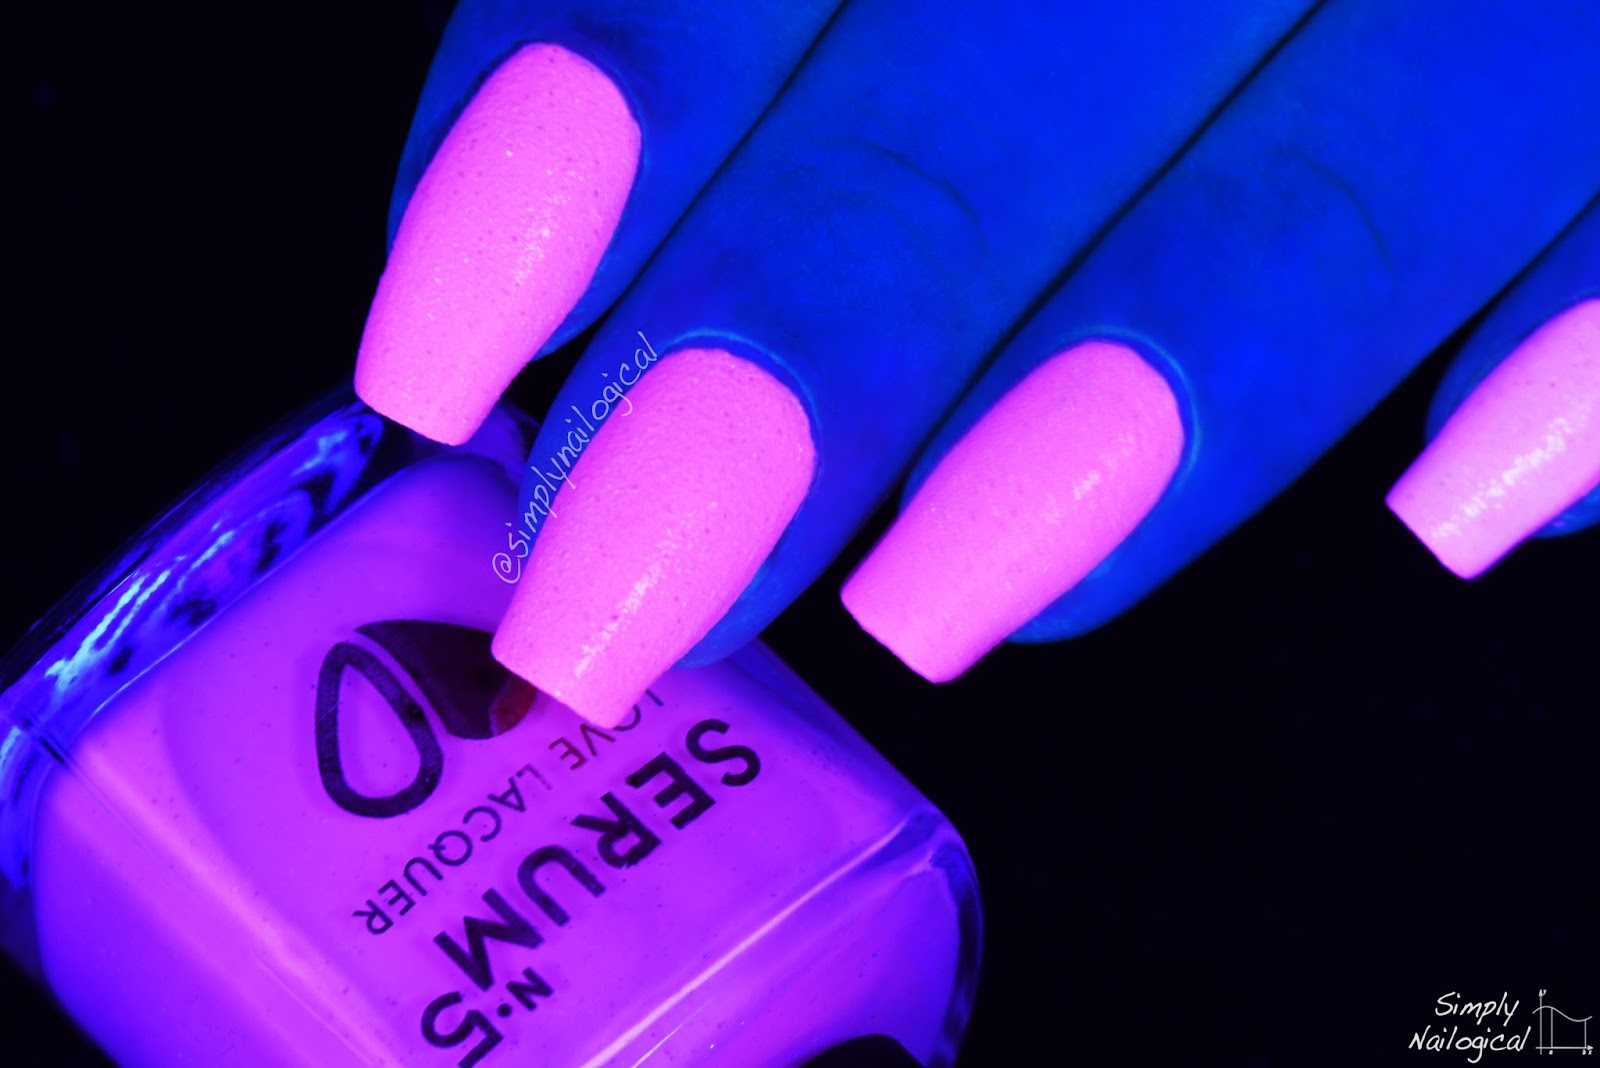 Best Glow In Dark Nail Polish Photos.Best Cheap Neon Nail Polish ...